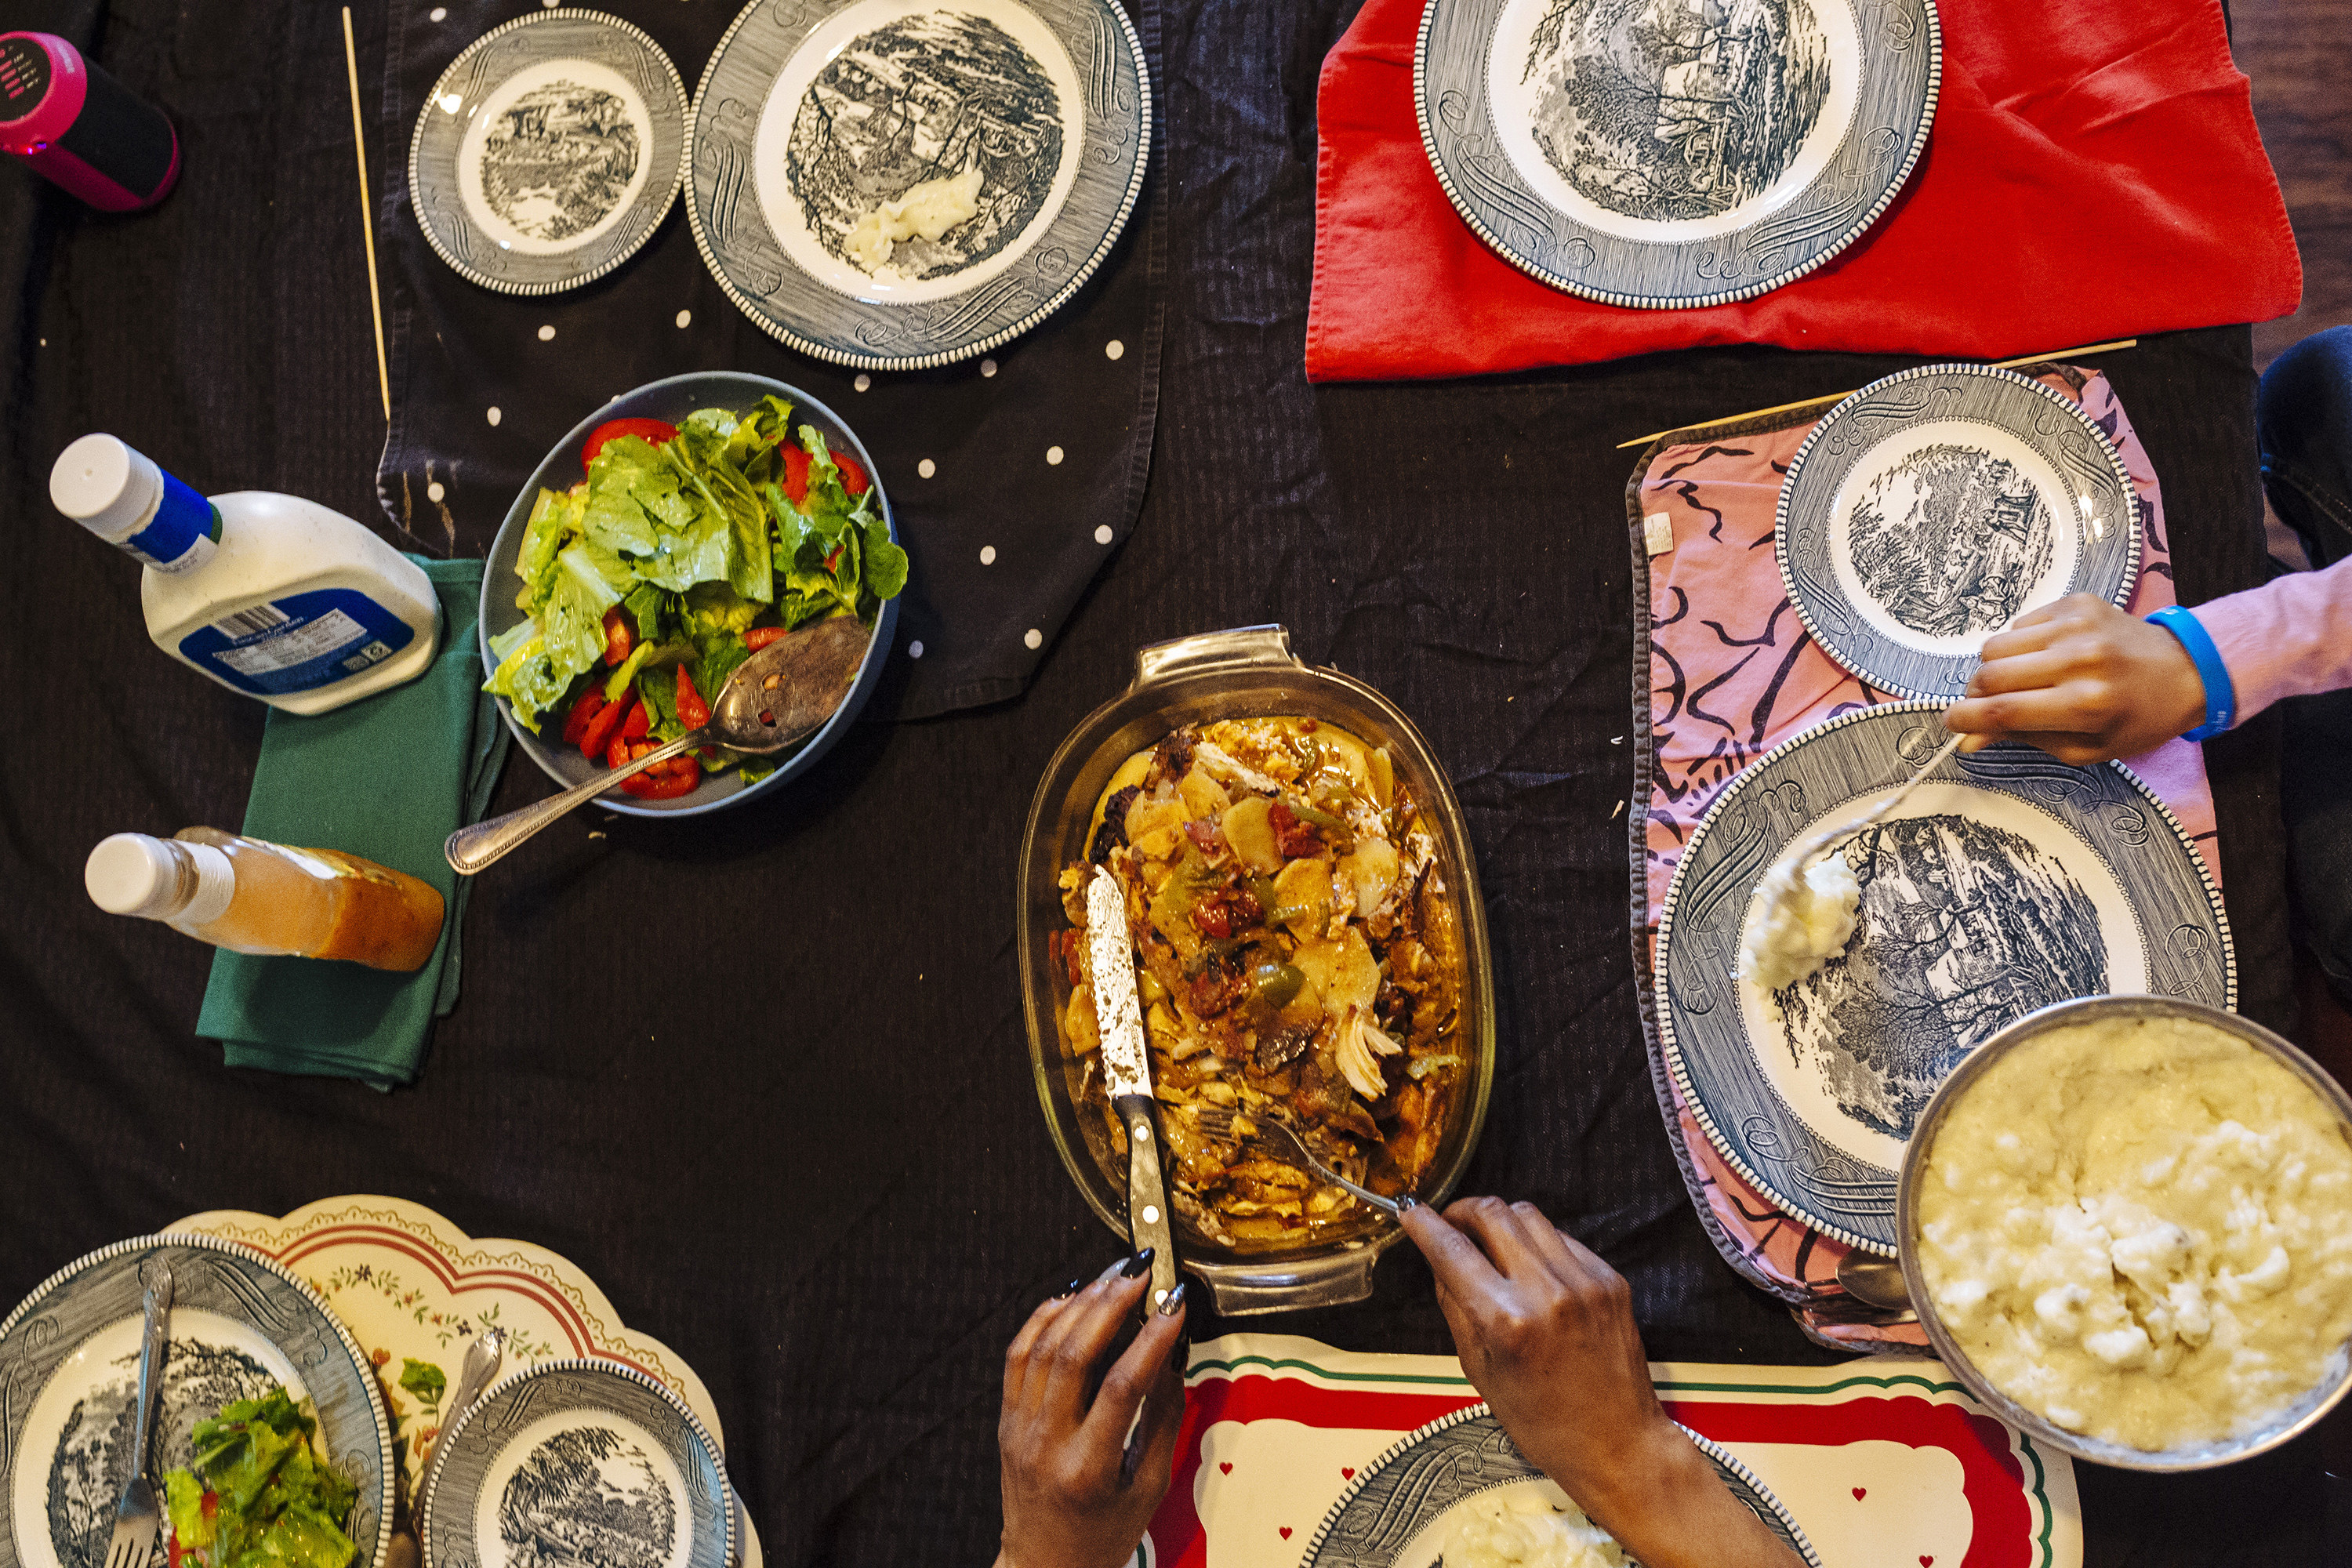 An overhead view of a tabletop covered in food dishes with hands reaching in to eat